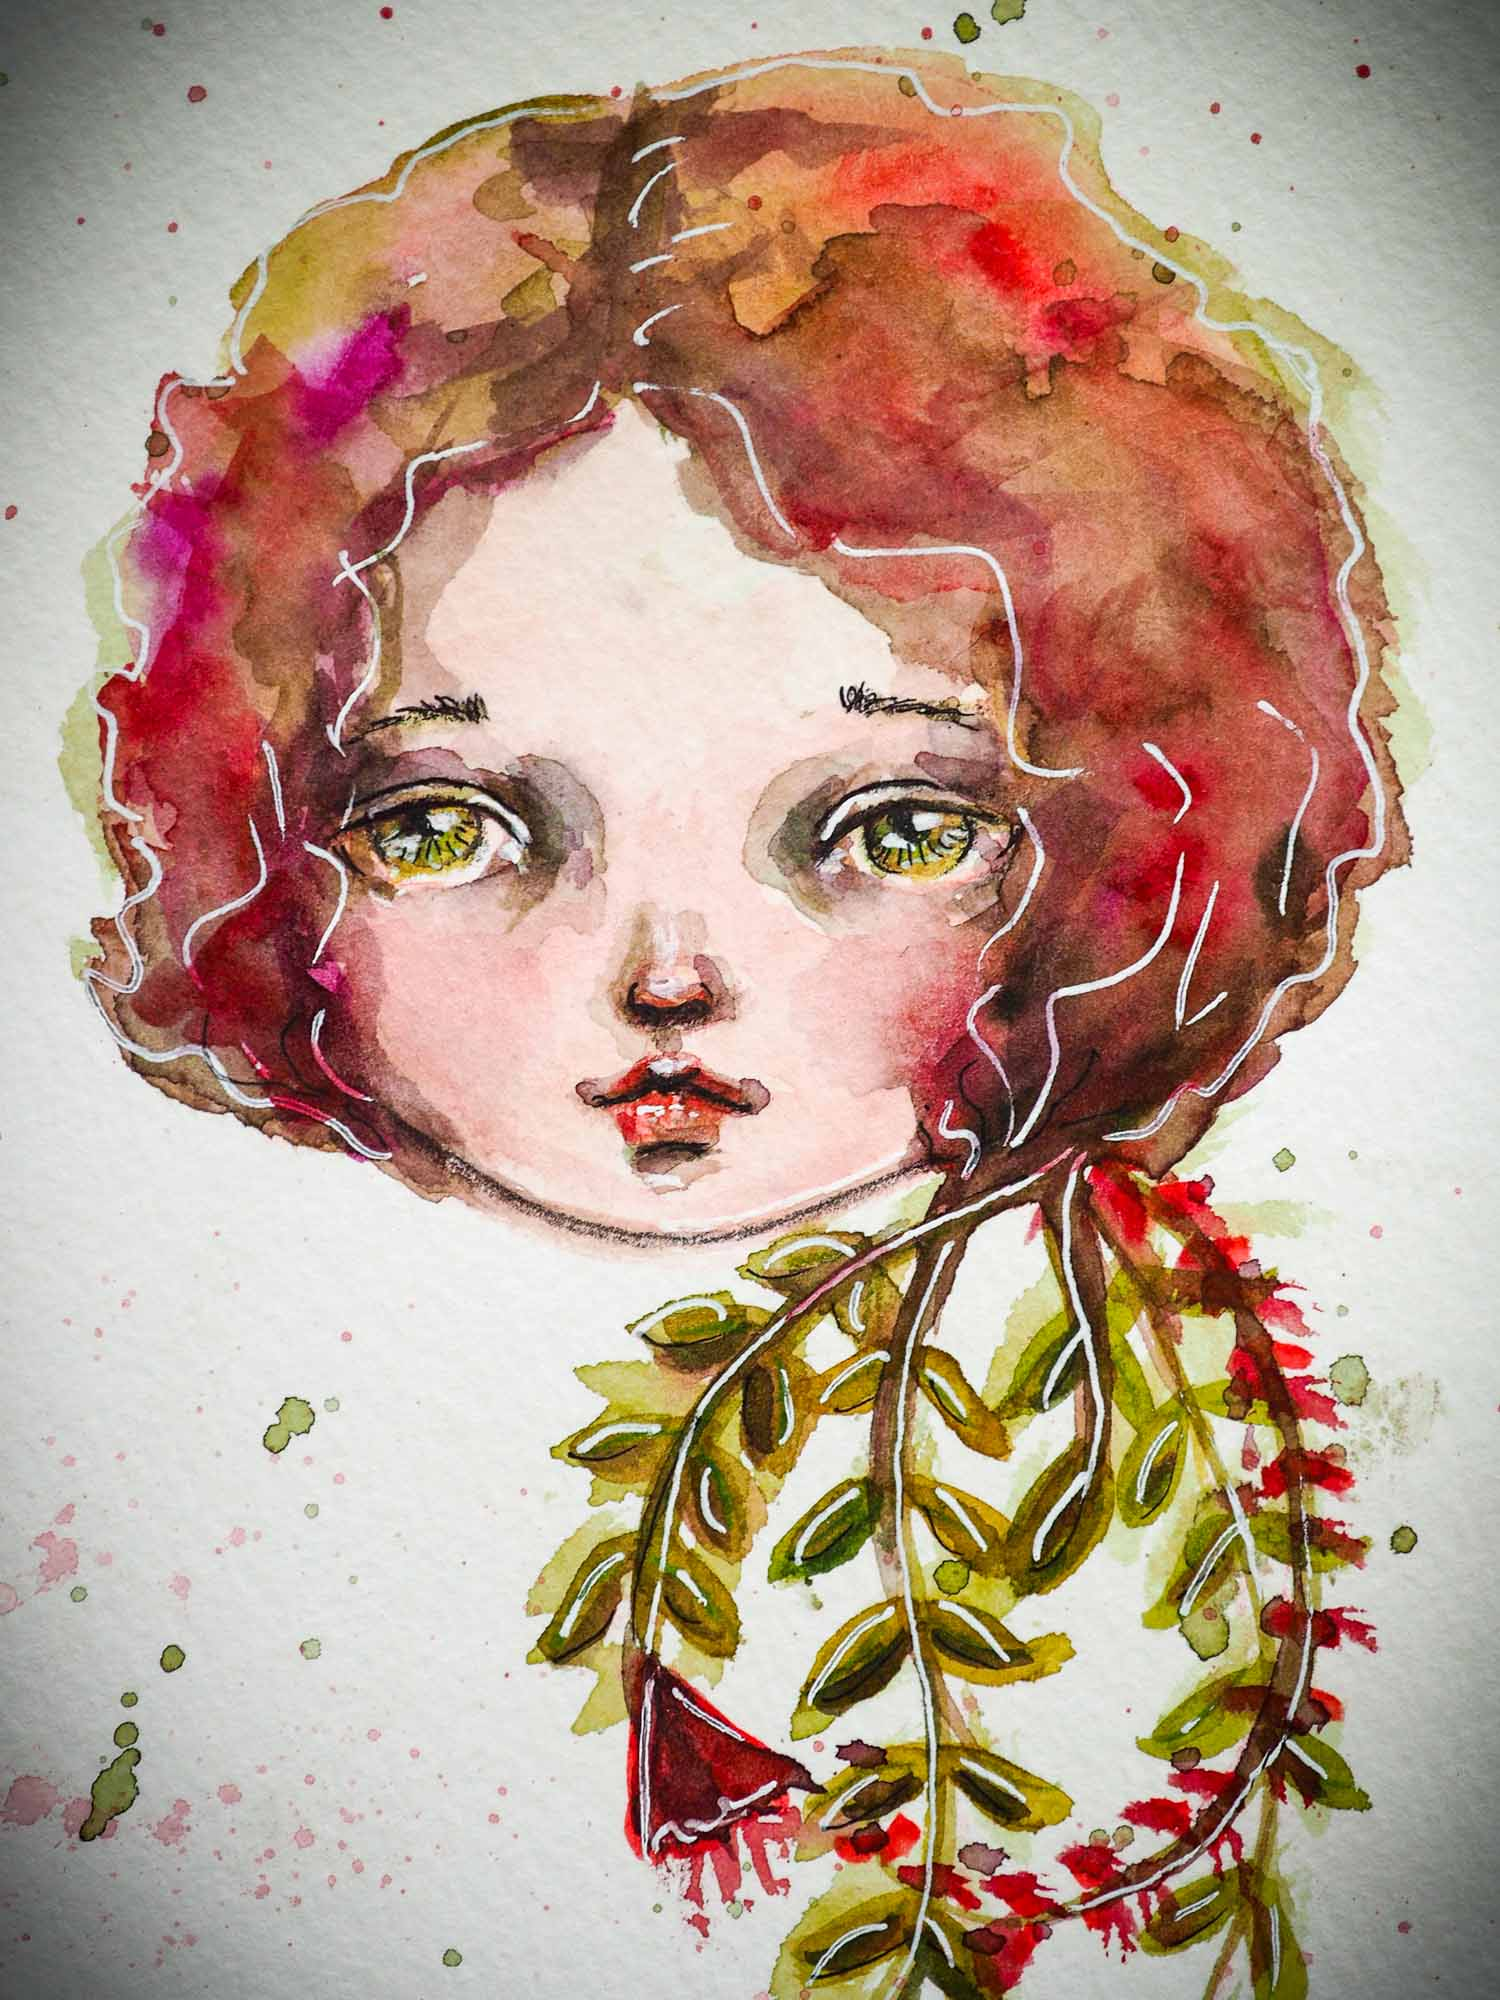 Watercolor on paper original painting by Danita Art. A blooming rose has the face of a green eyed girl as she open her hair petals and hair.